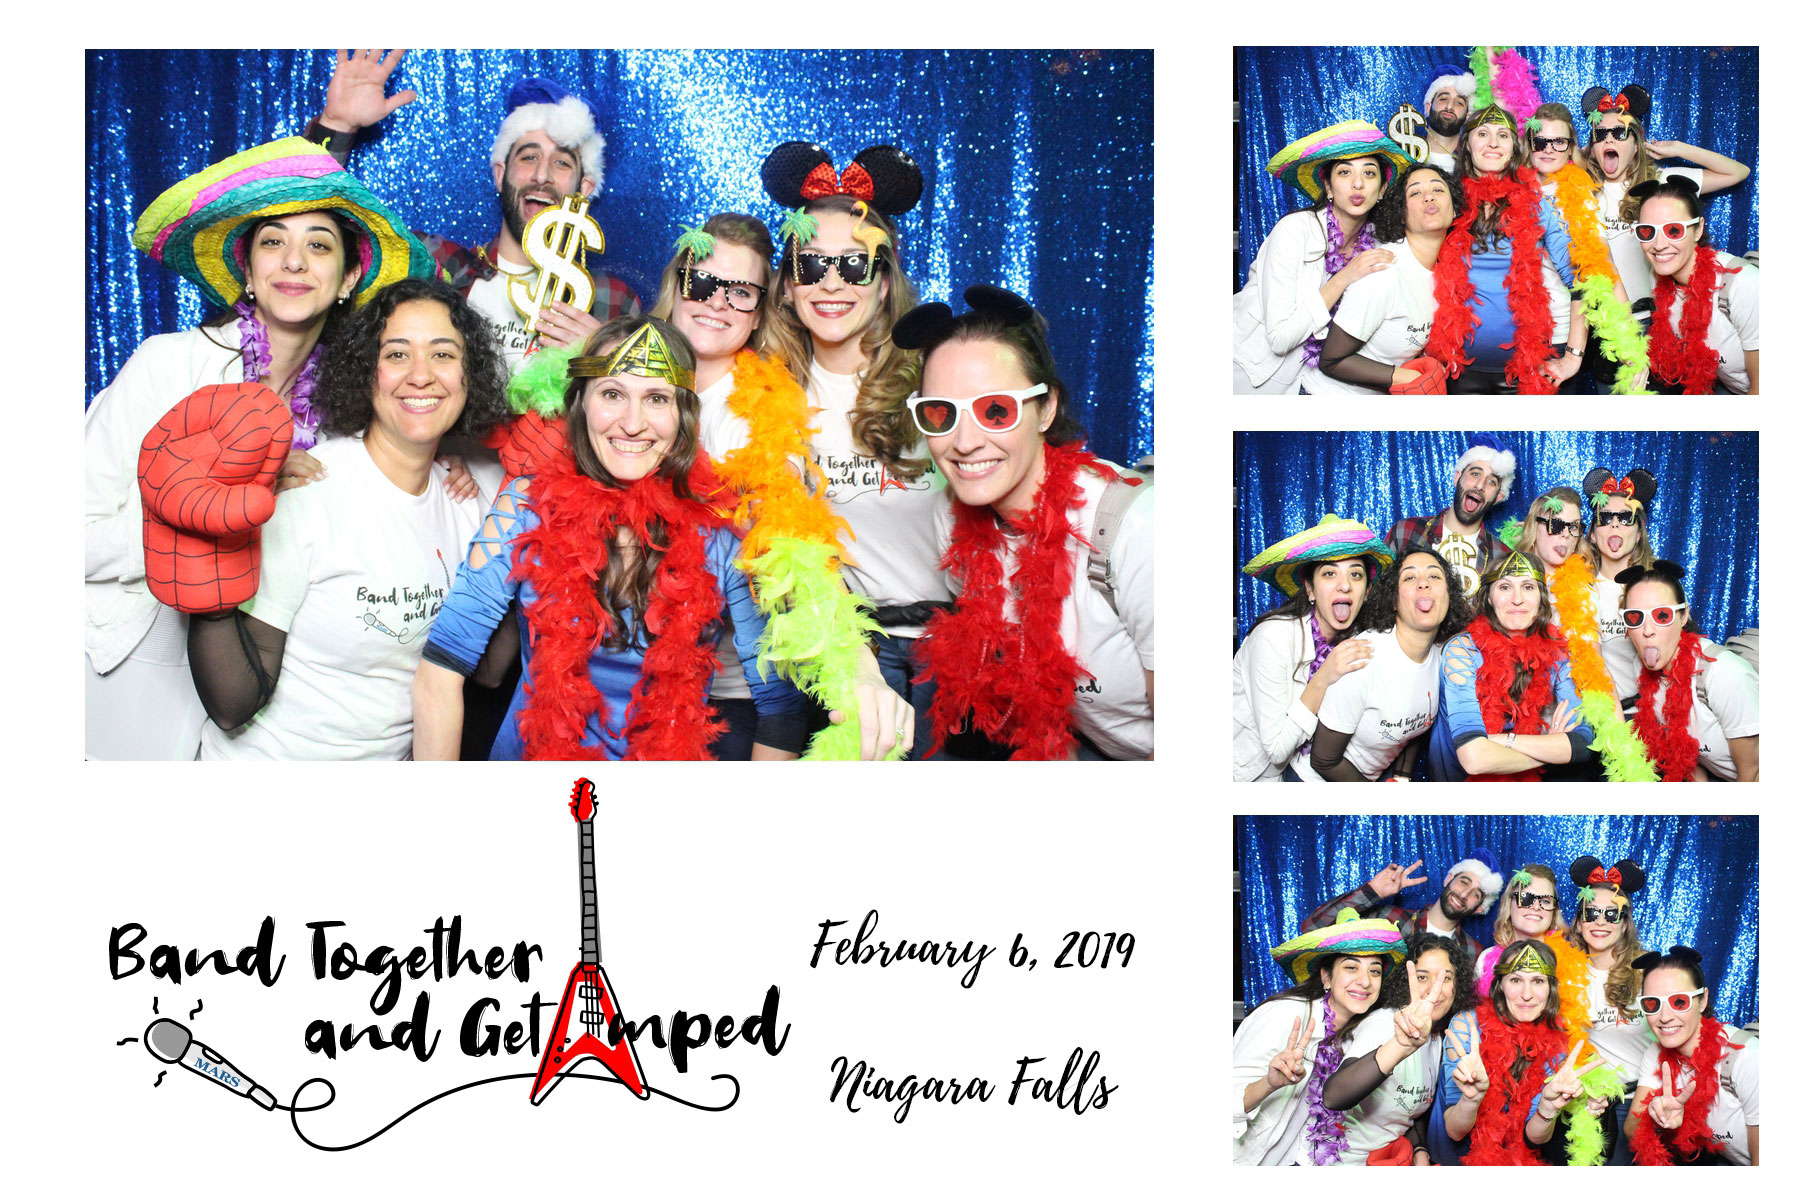 musical event photo booth with blue backdrop